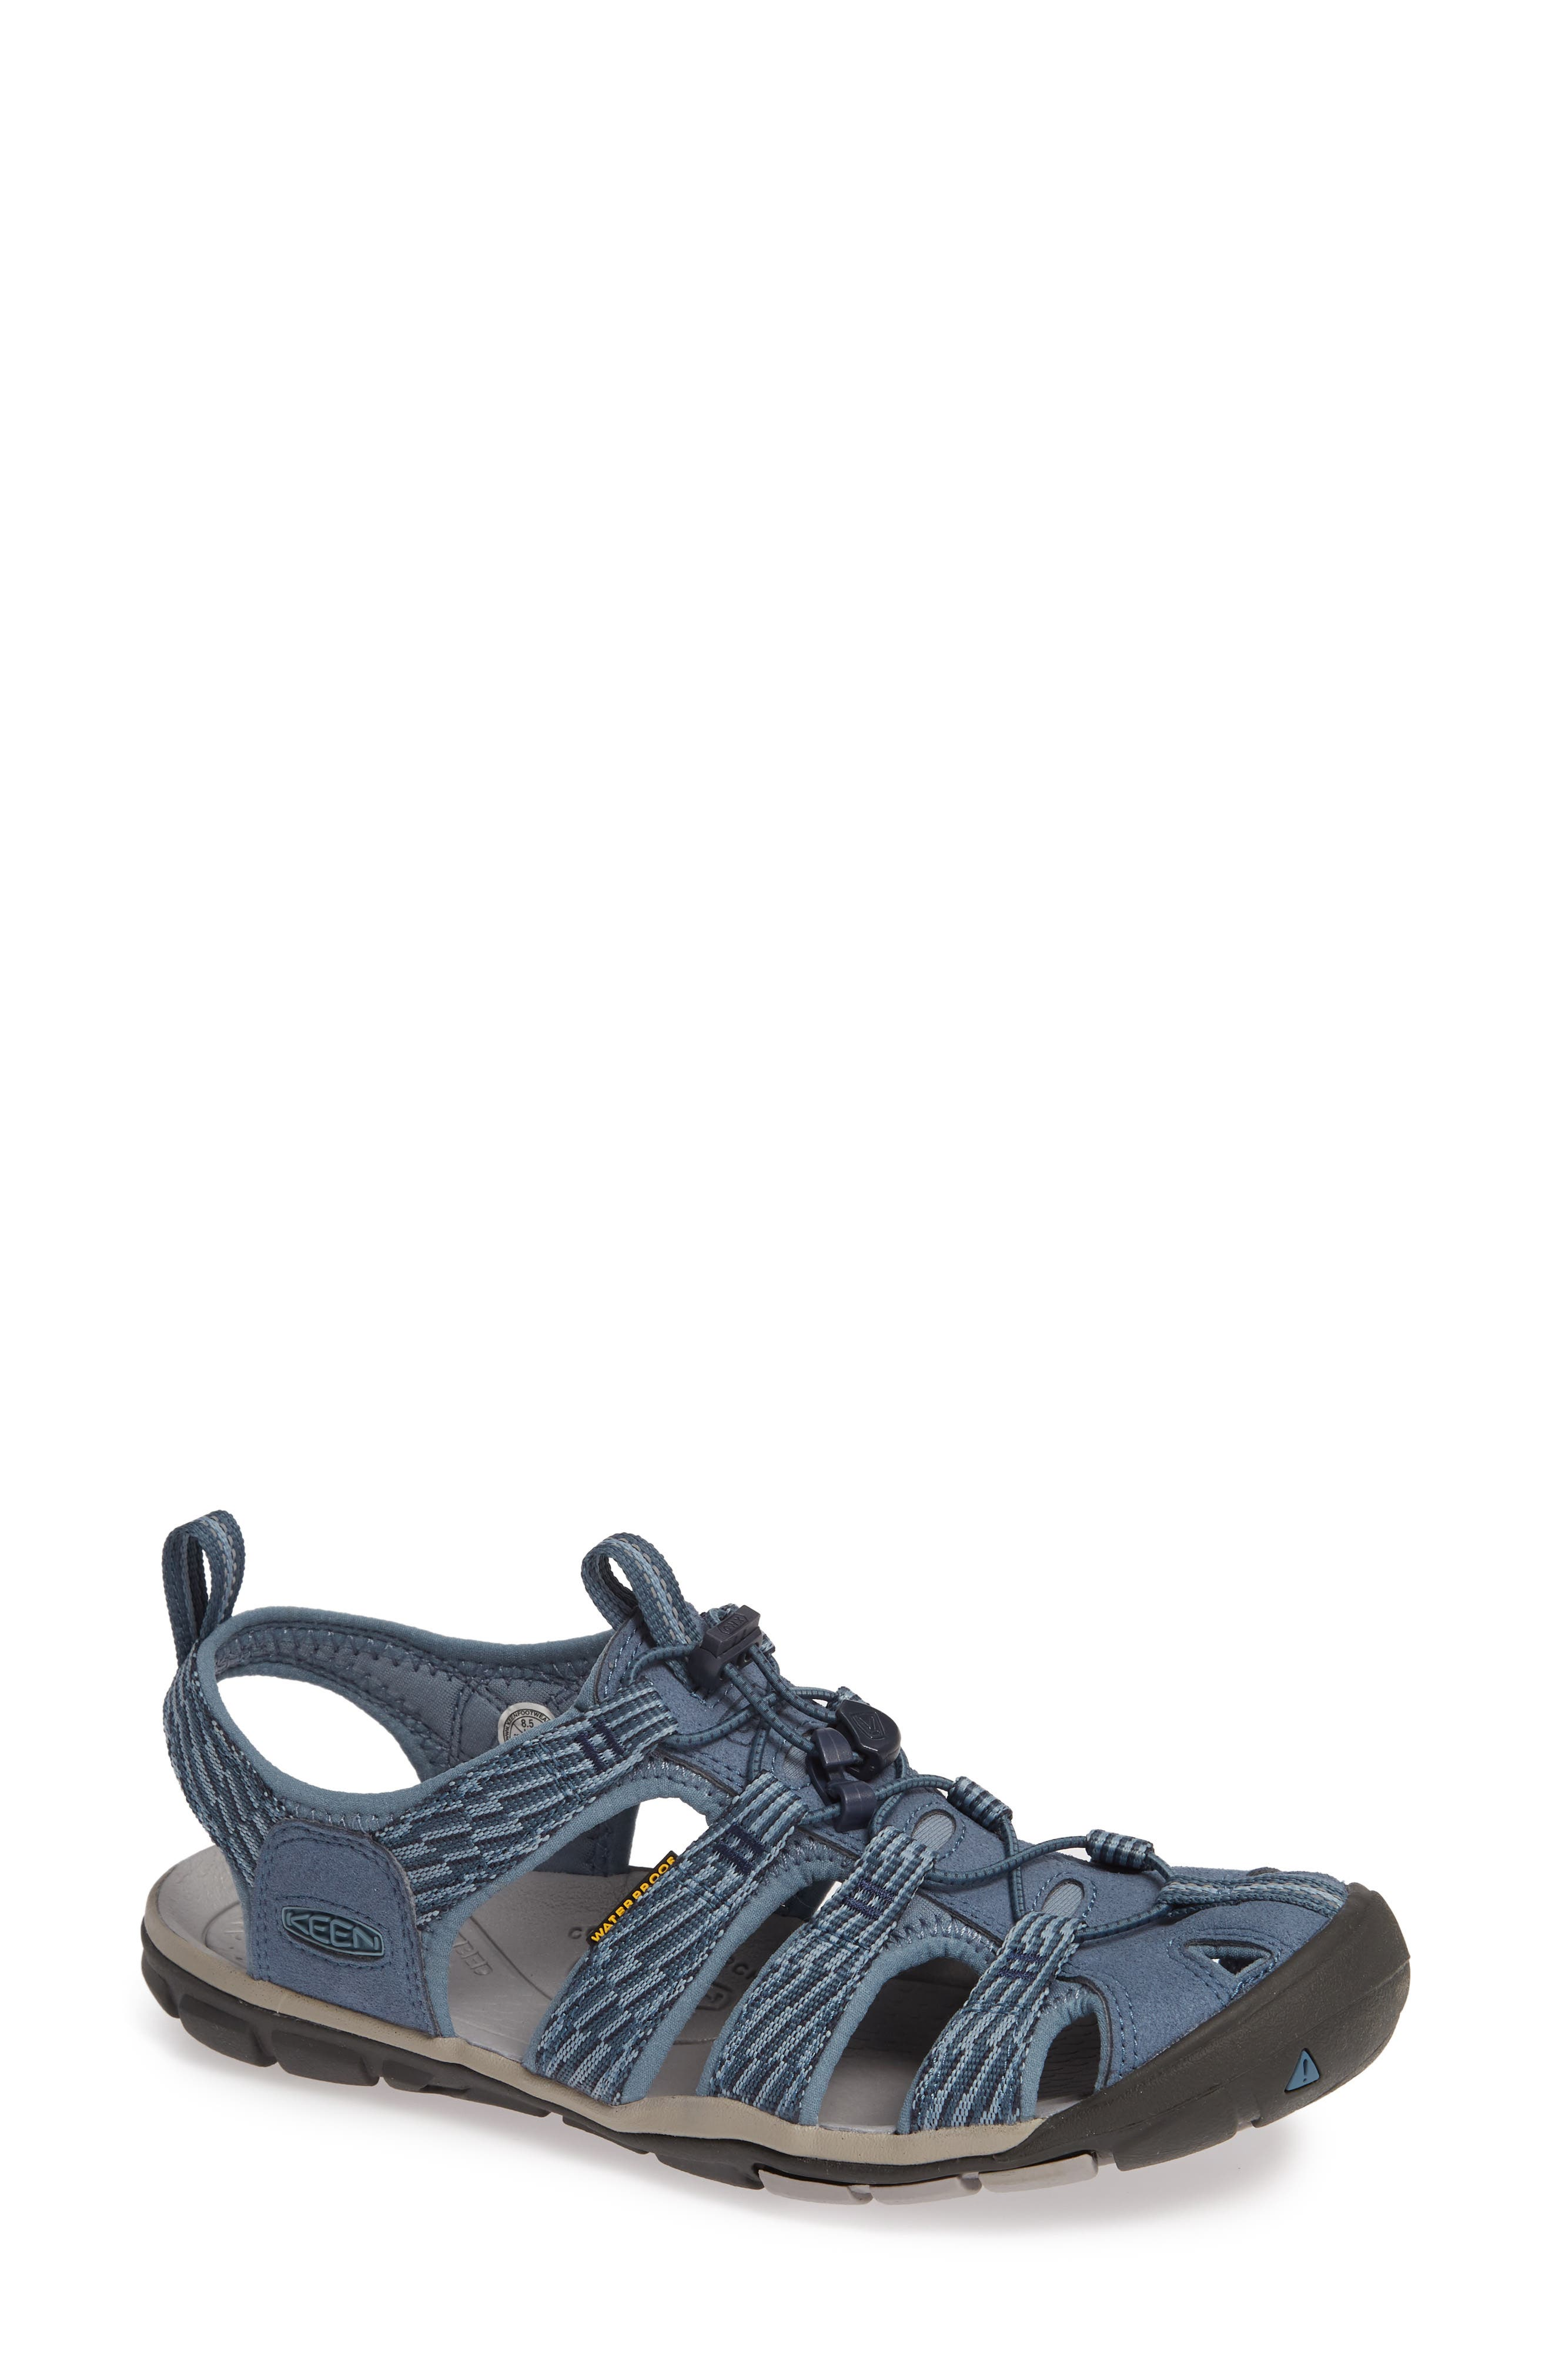 KEEN 'Clearwater CNX' Sandal, Main, color, BLUE MIRAGE/ CITADEL FABRIC